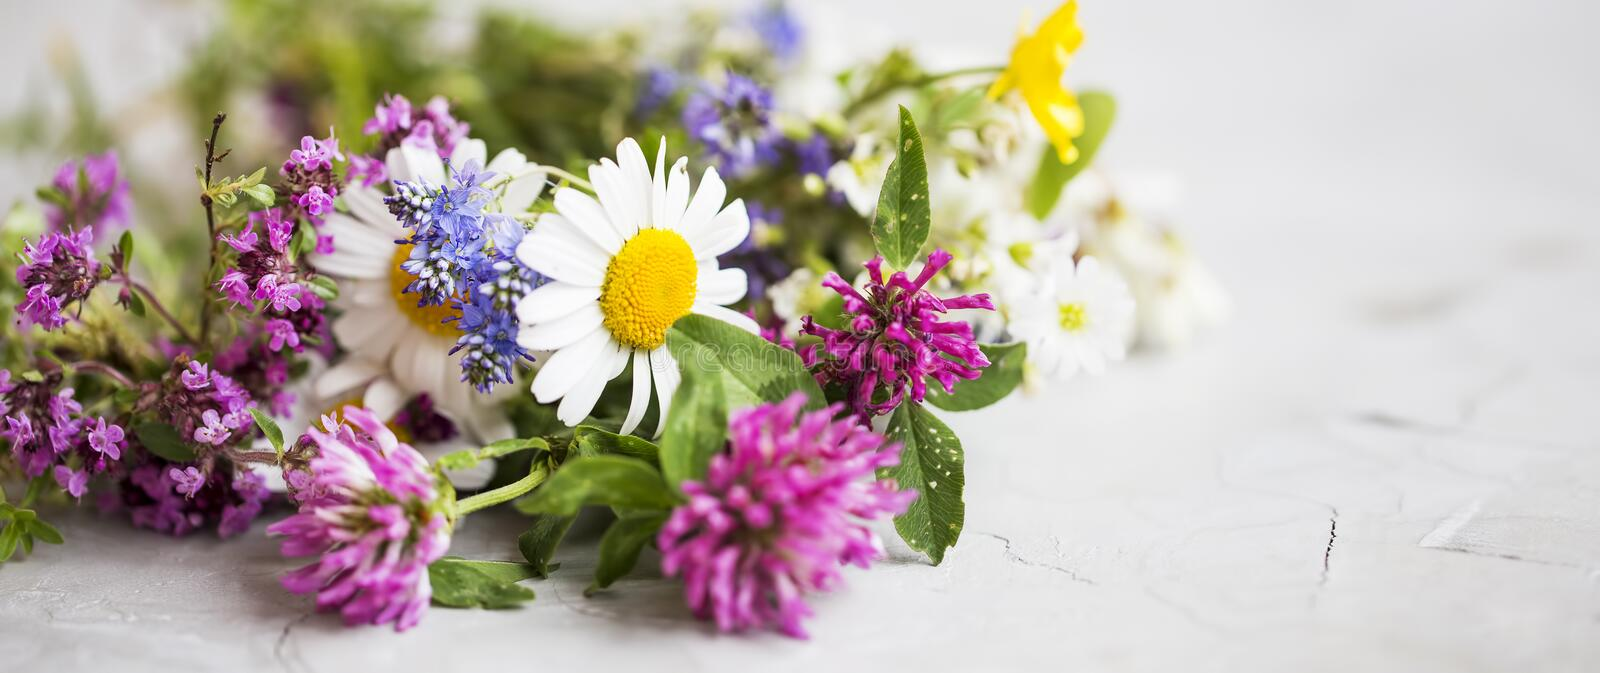 Healing herbs. Medicinal plants and flowers bouquet with mint, c stock image